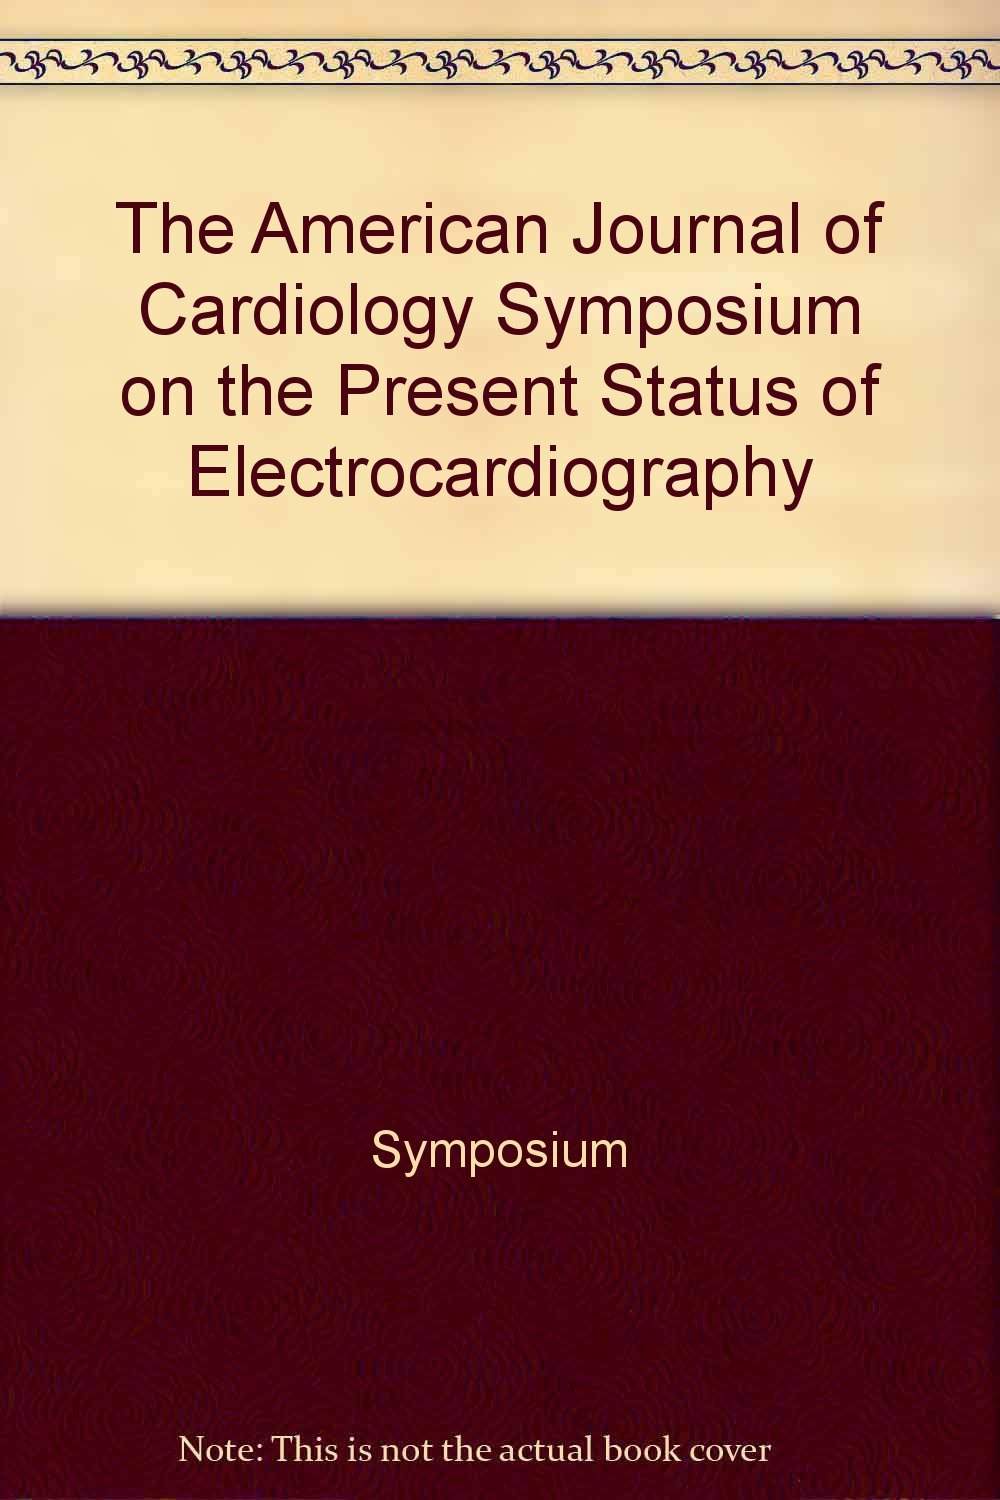 The American Journal of Cardiology Symposium on the Present